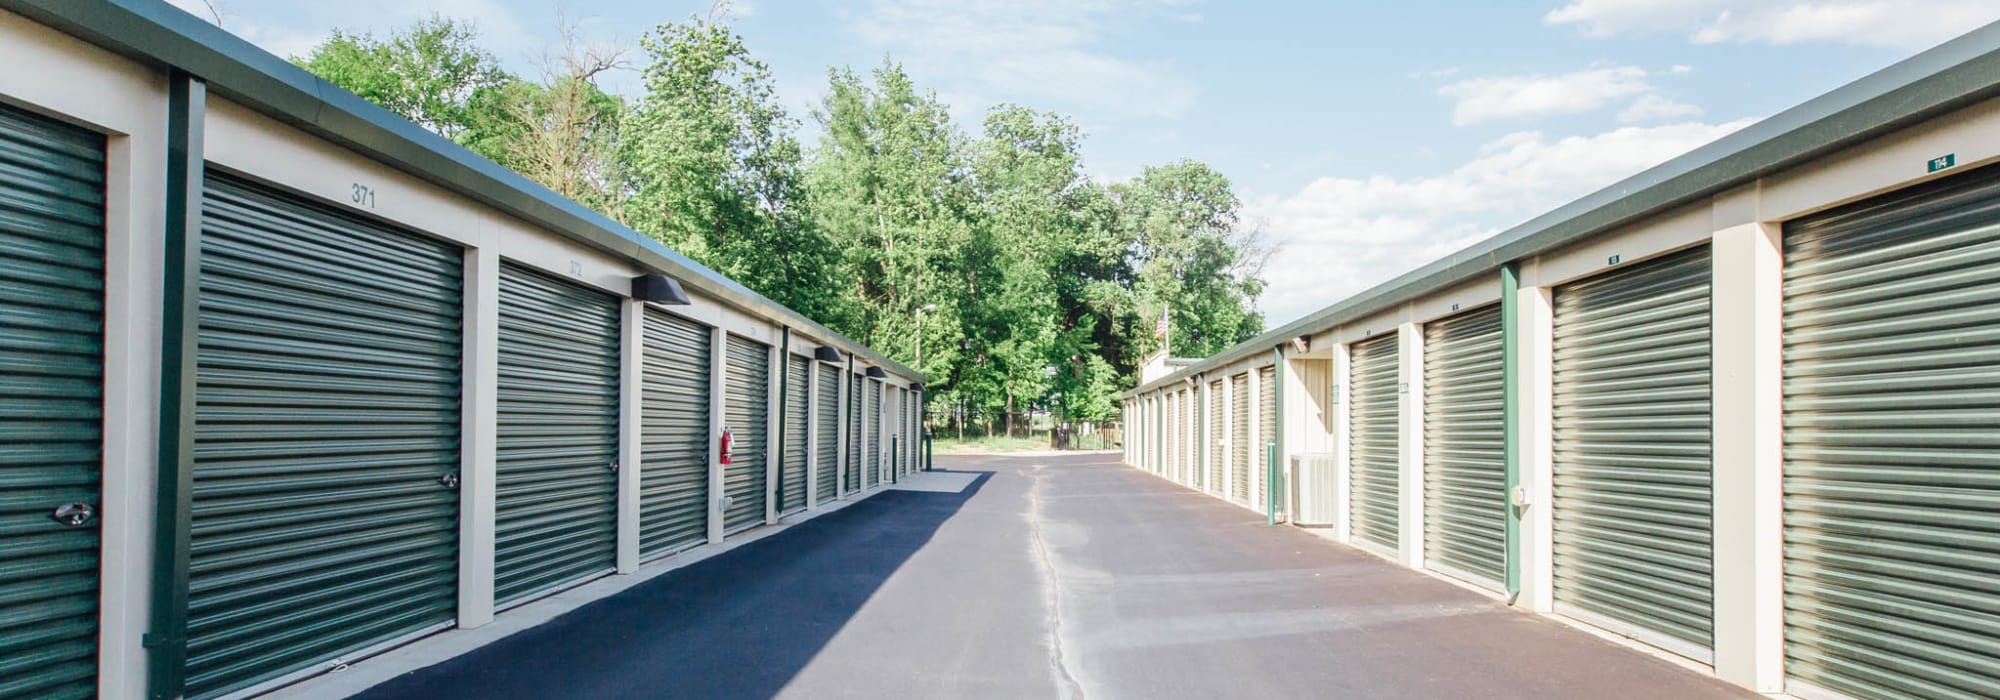 Self storage units in Harrisburg North Carolina